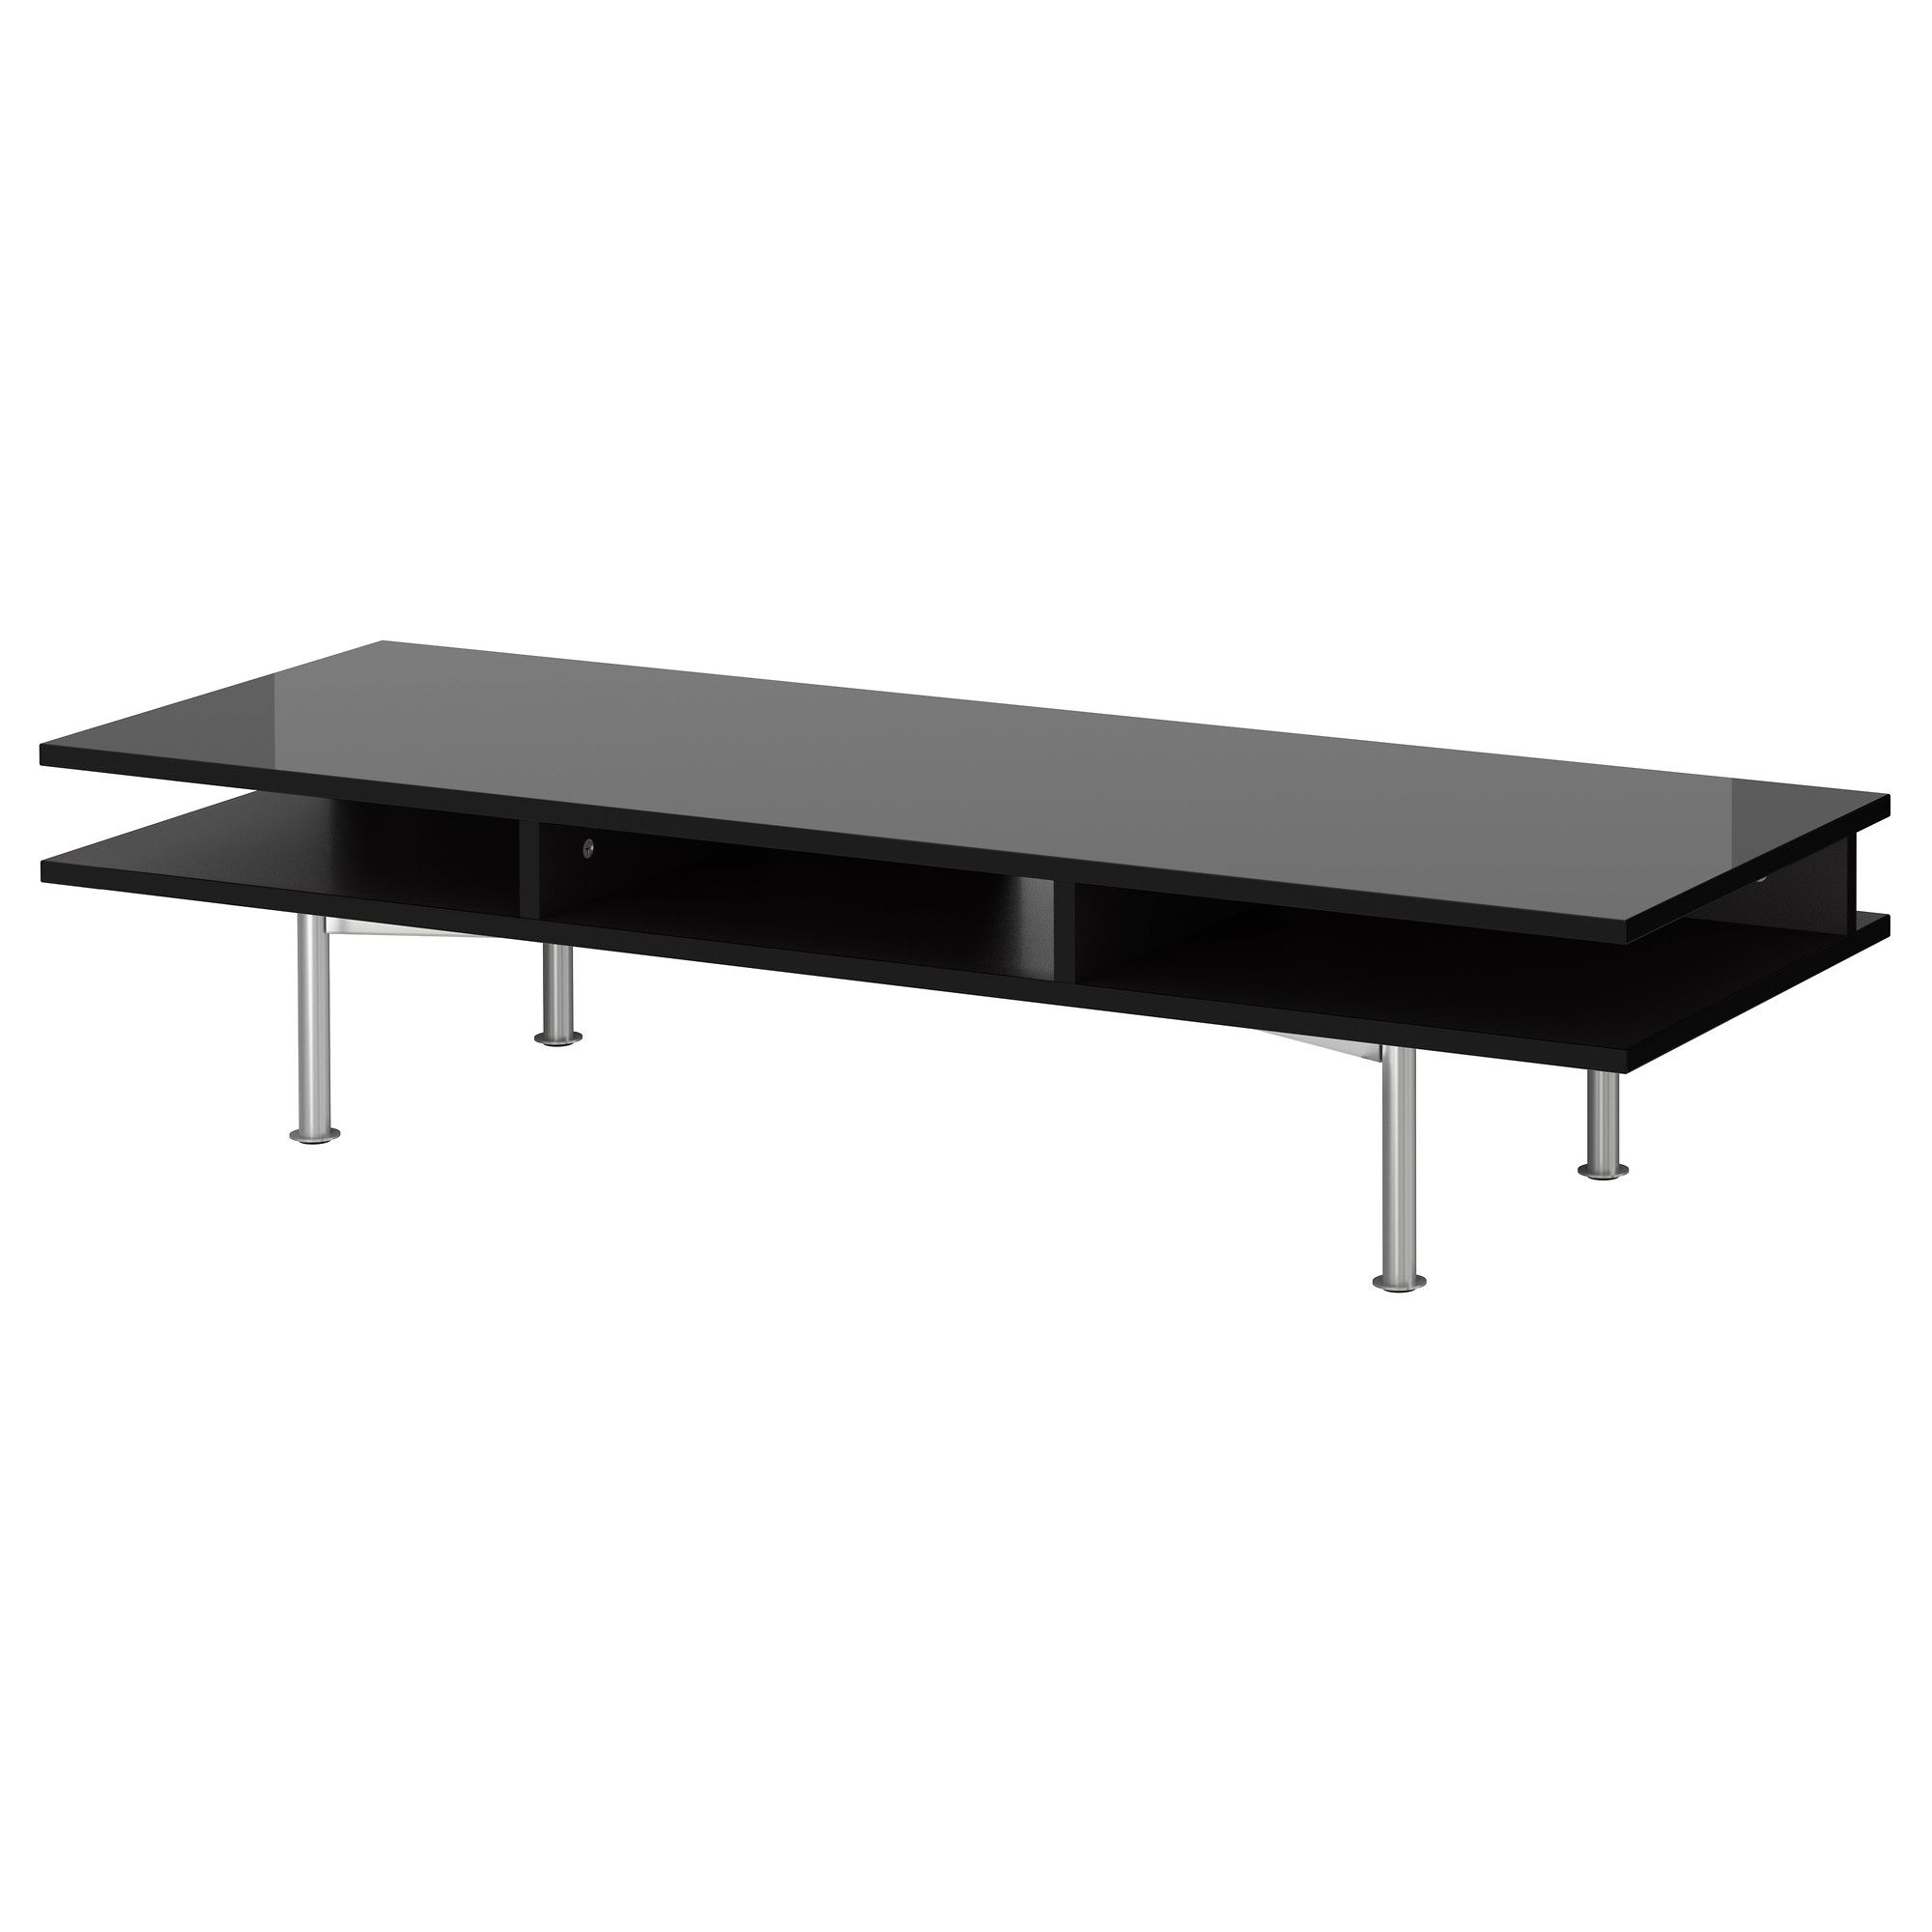 Ikea Couchtisch Tofteryd Tofteryd Tv Unit High Gloss Black Ikea 119 00 As Of 07 26